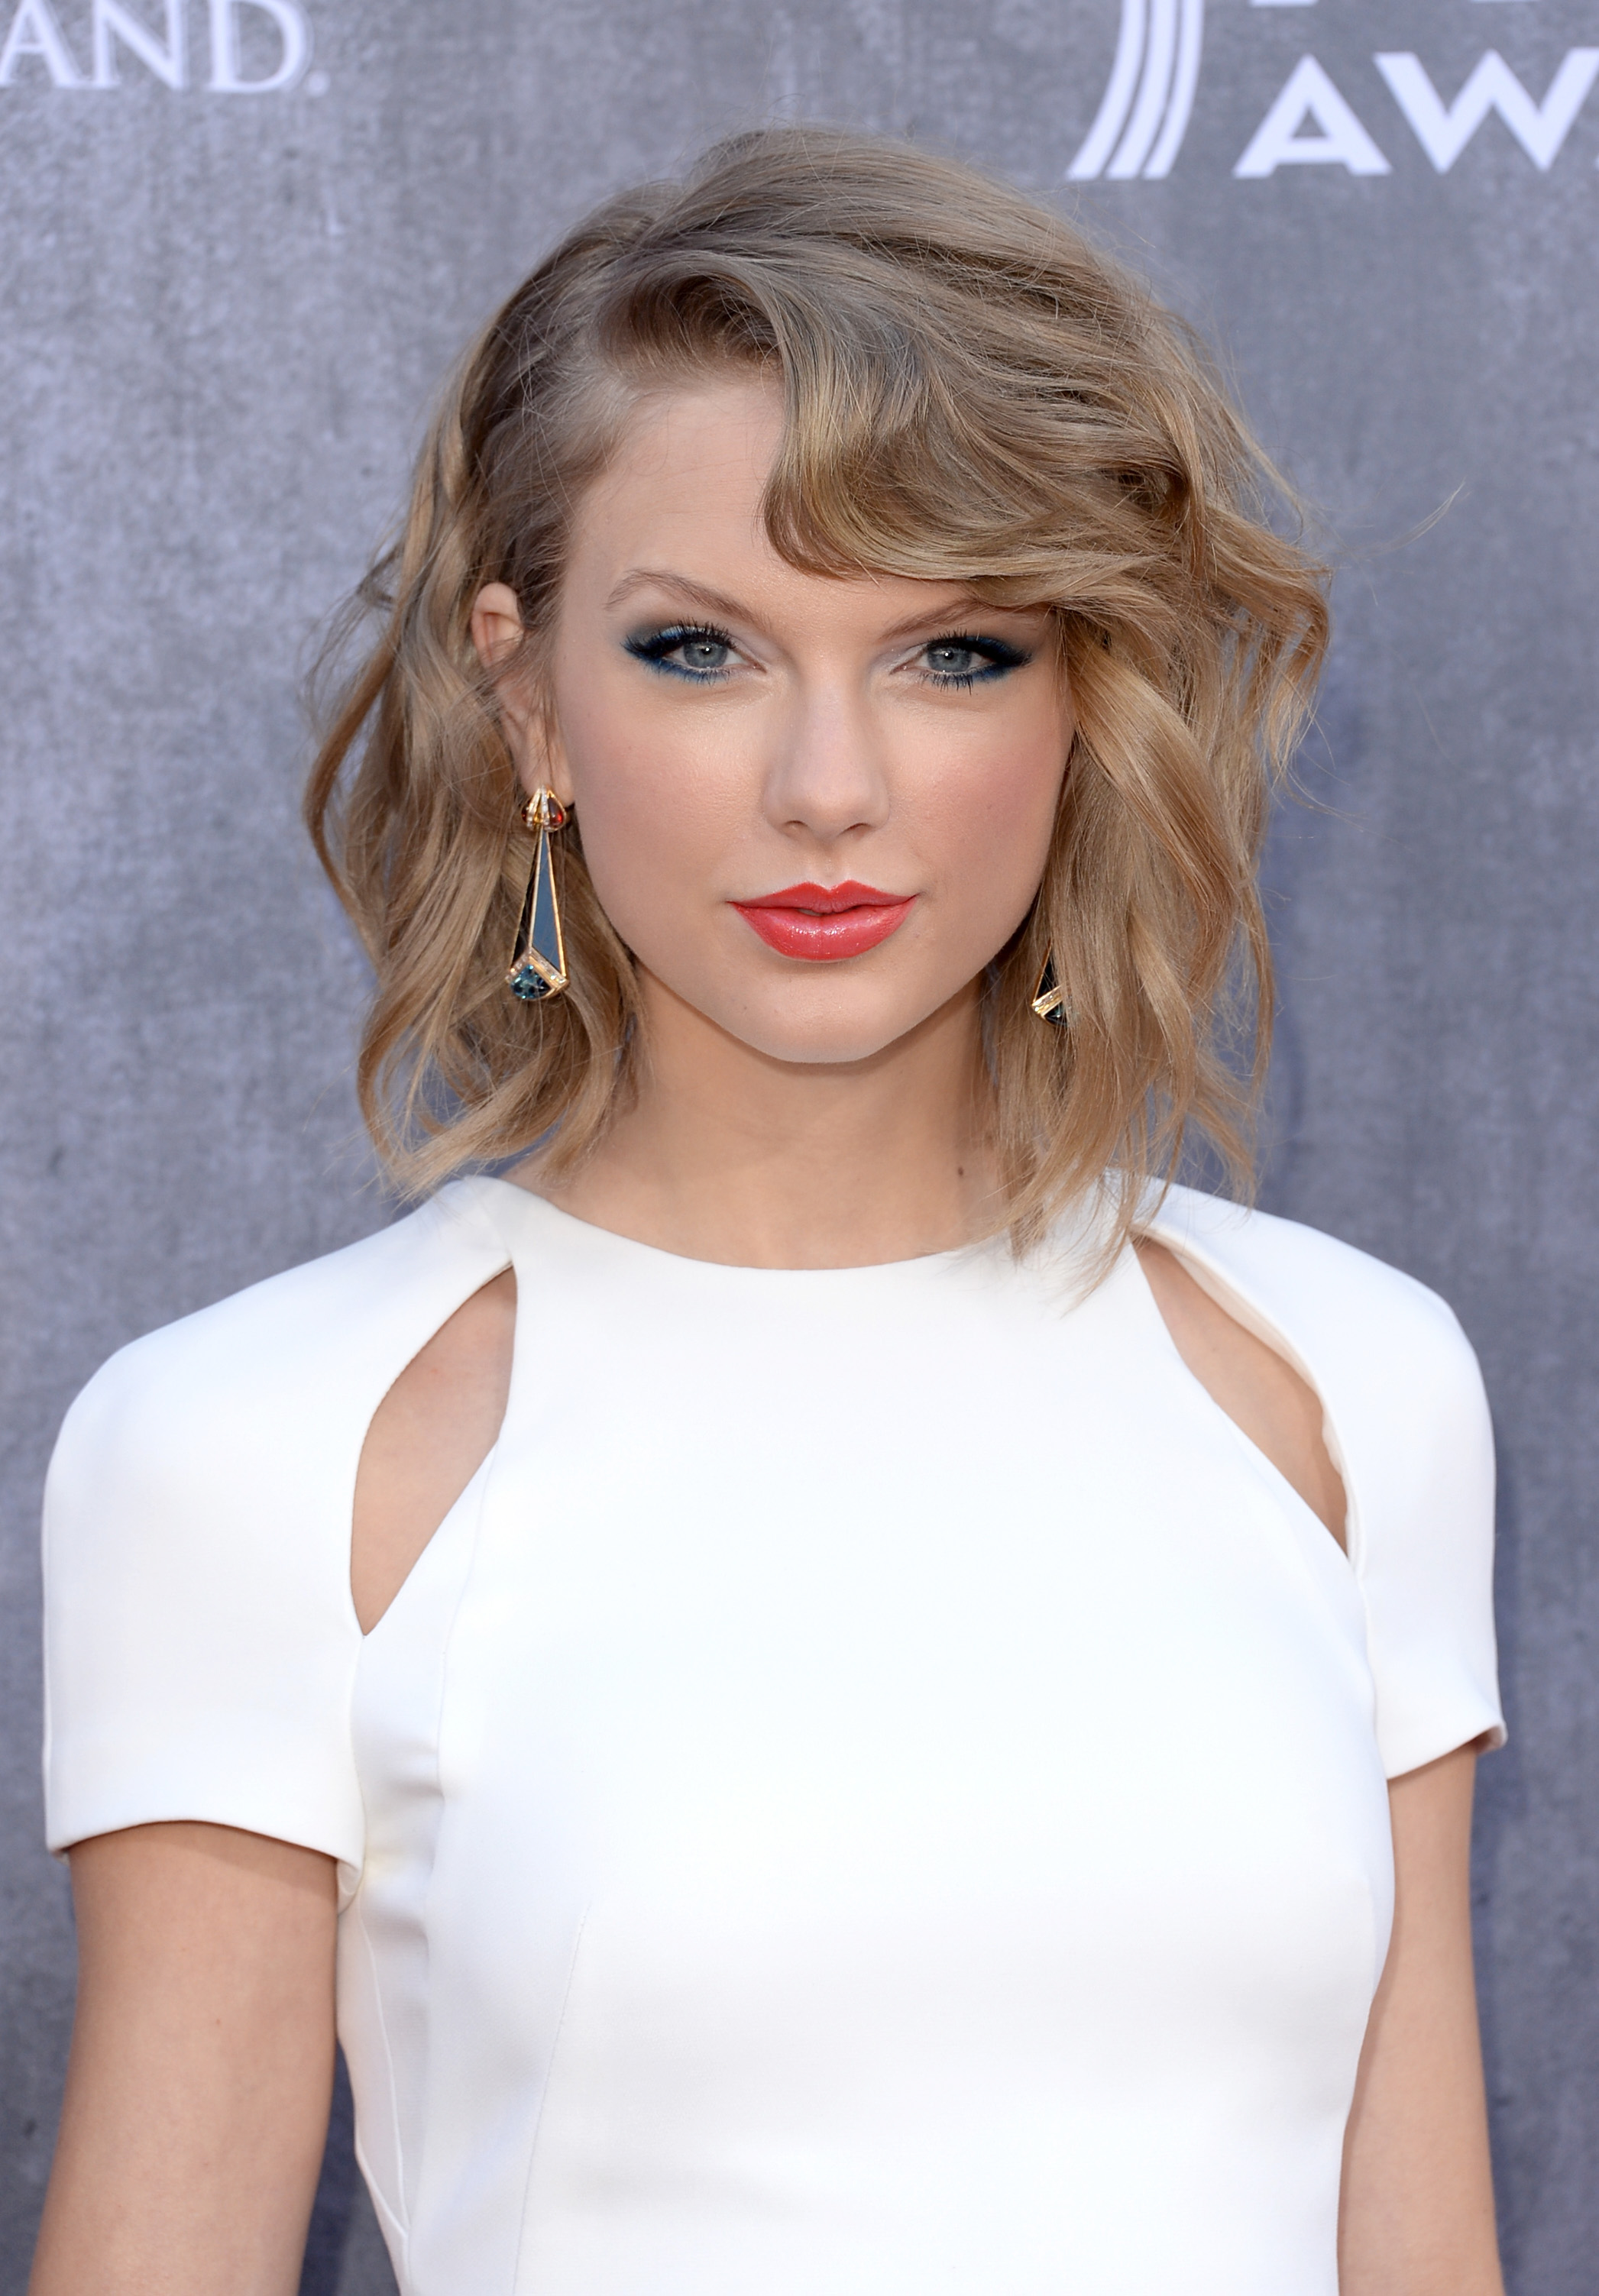 Singer/songwriter Taylor Swift attends the 49th Annual Academy Of Country Music Awards at the MGM Grand Garden Arena on April 6, 2014 in Las Vegas.